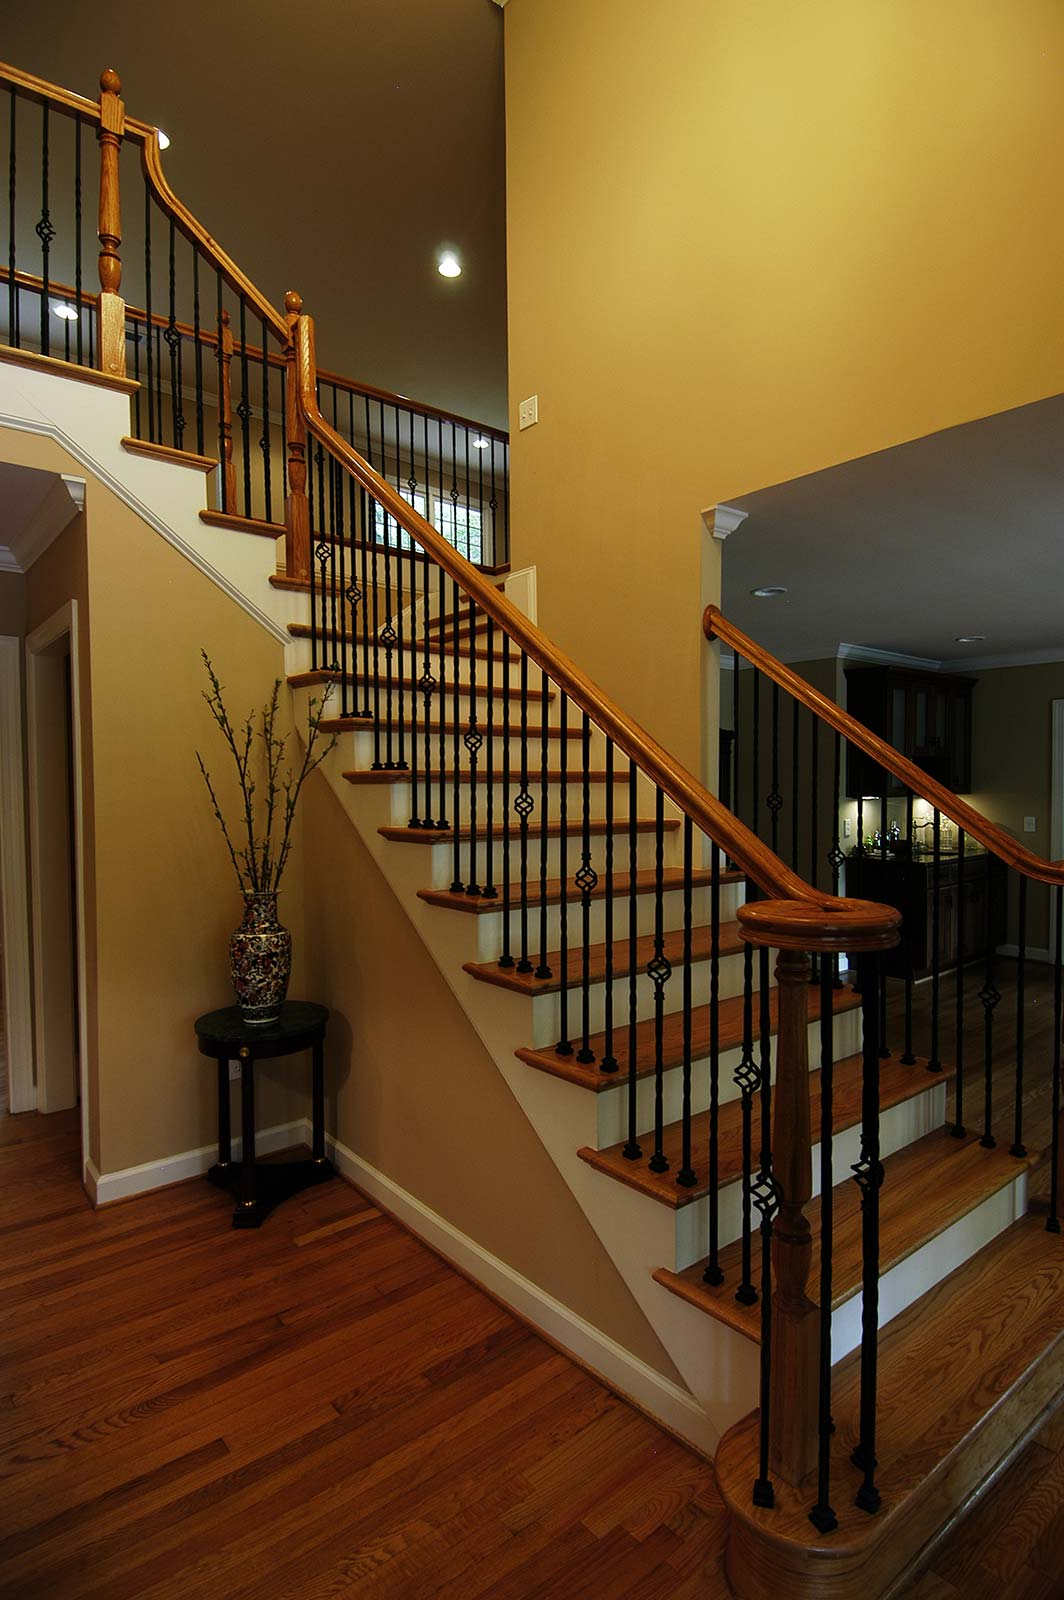 Classic open stairway added to access second floor